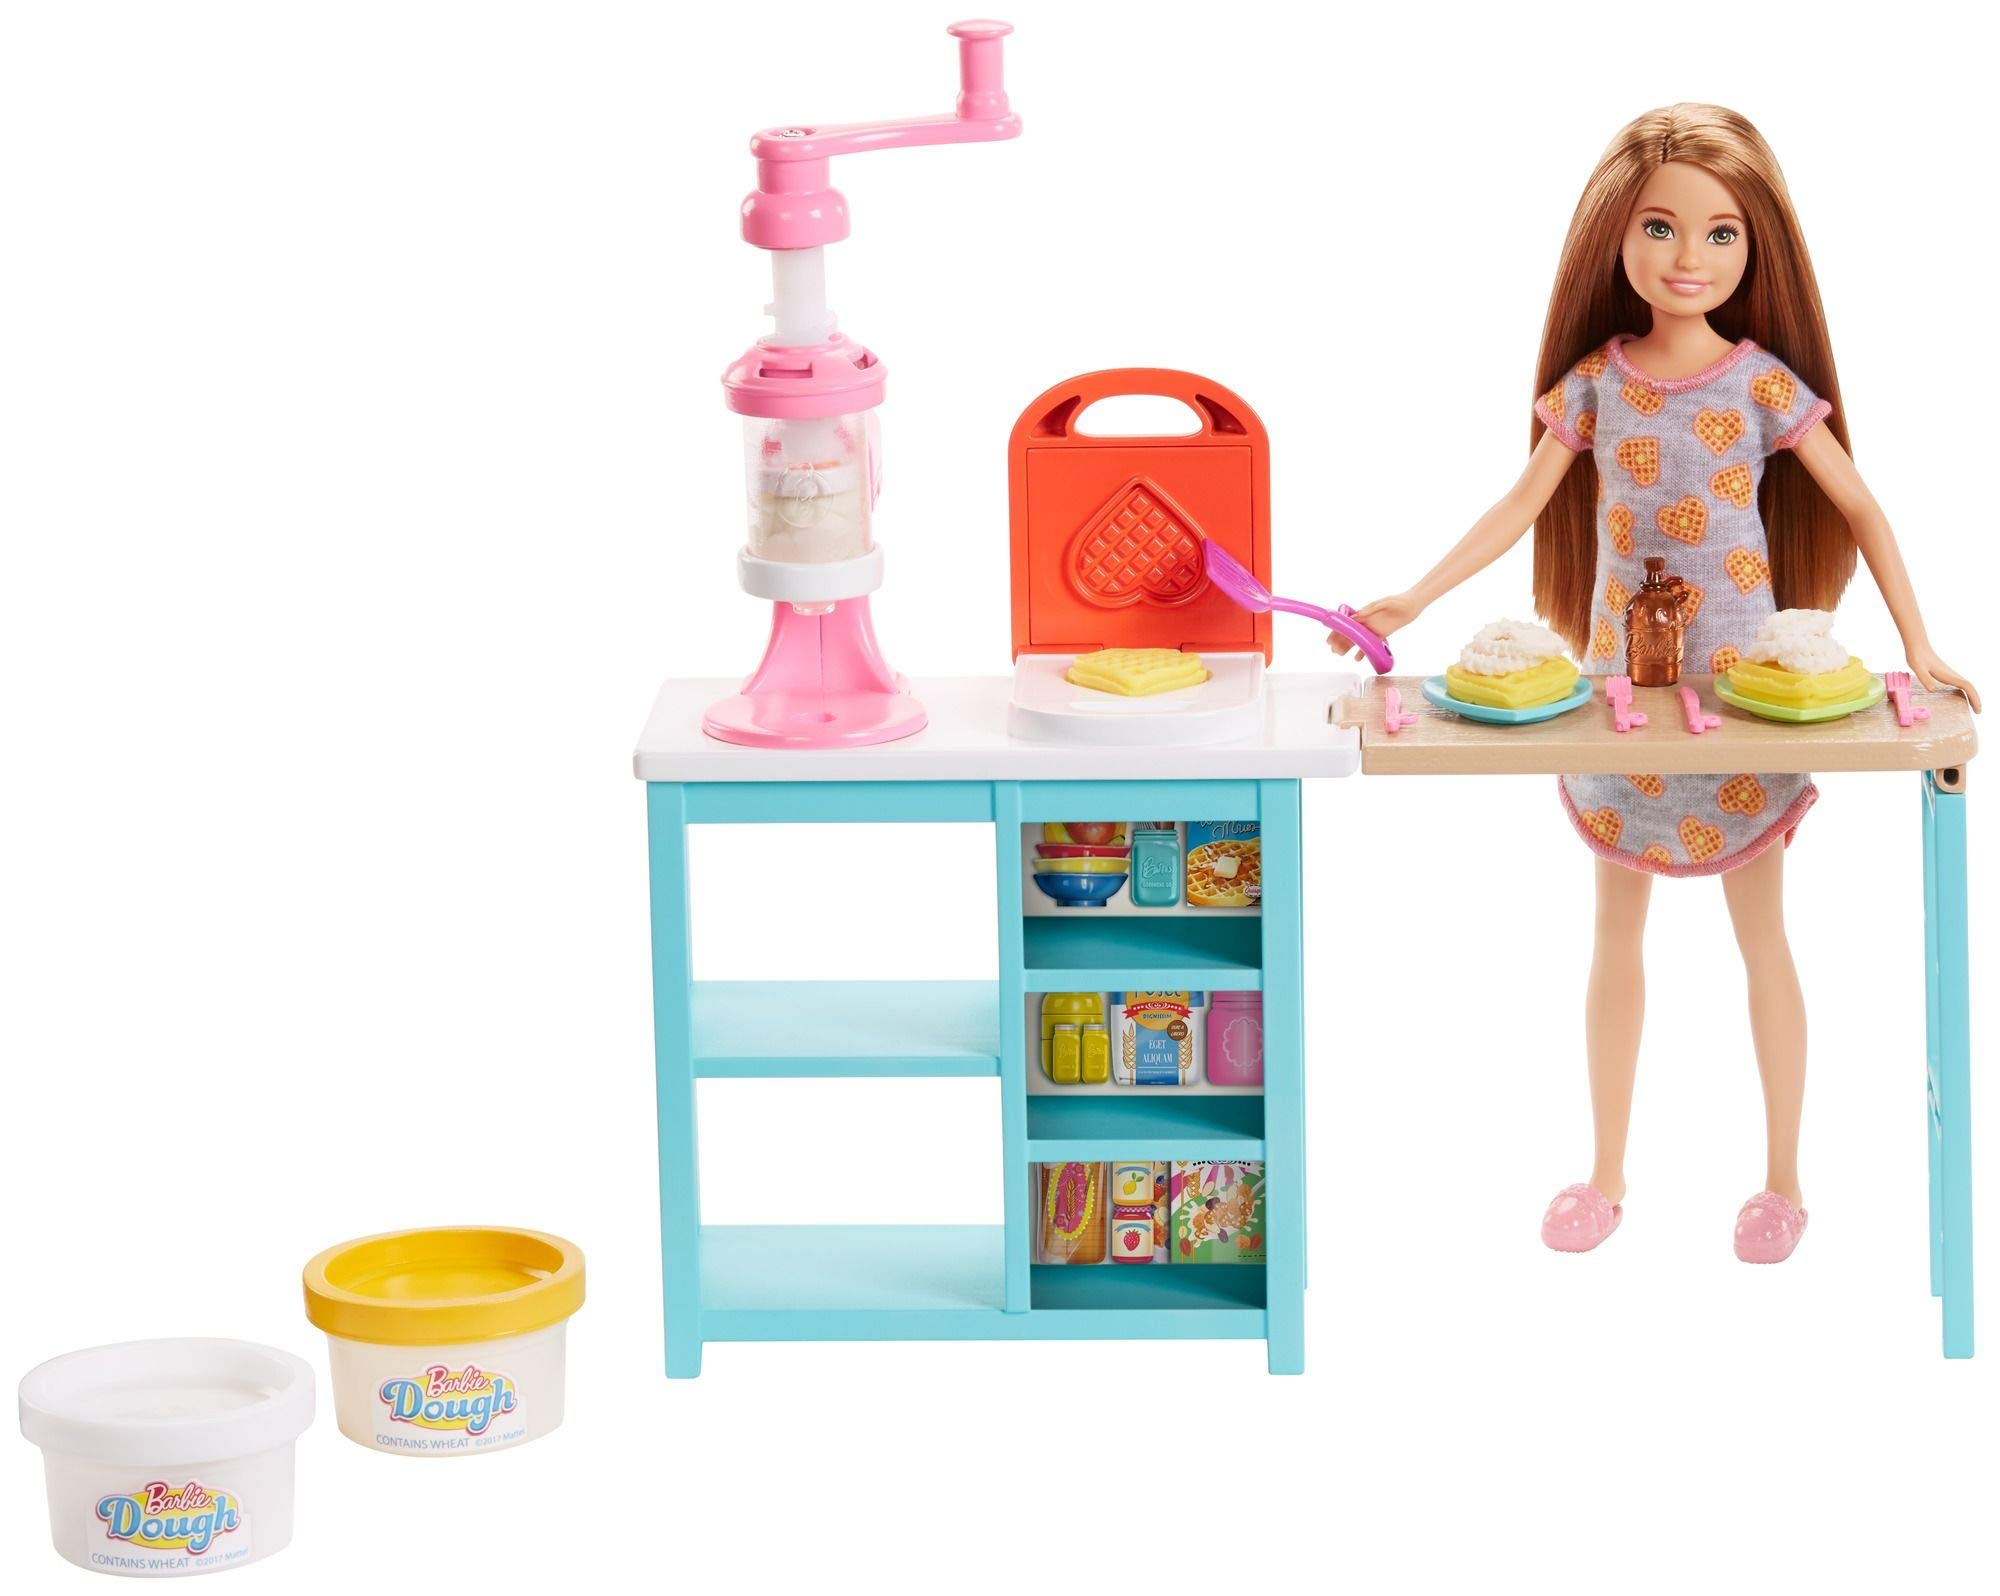 Barbie Breakfast Playset with Stacie Doll, Waffle-Maker, Whip Cream Machine & 2 Dough Colors